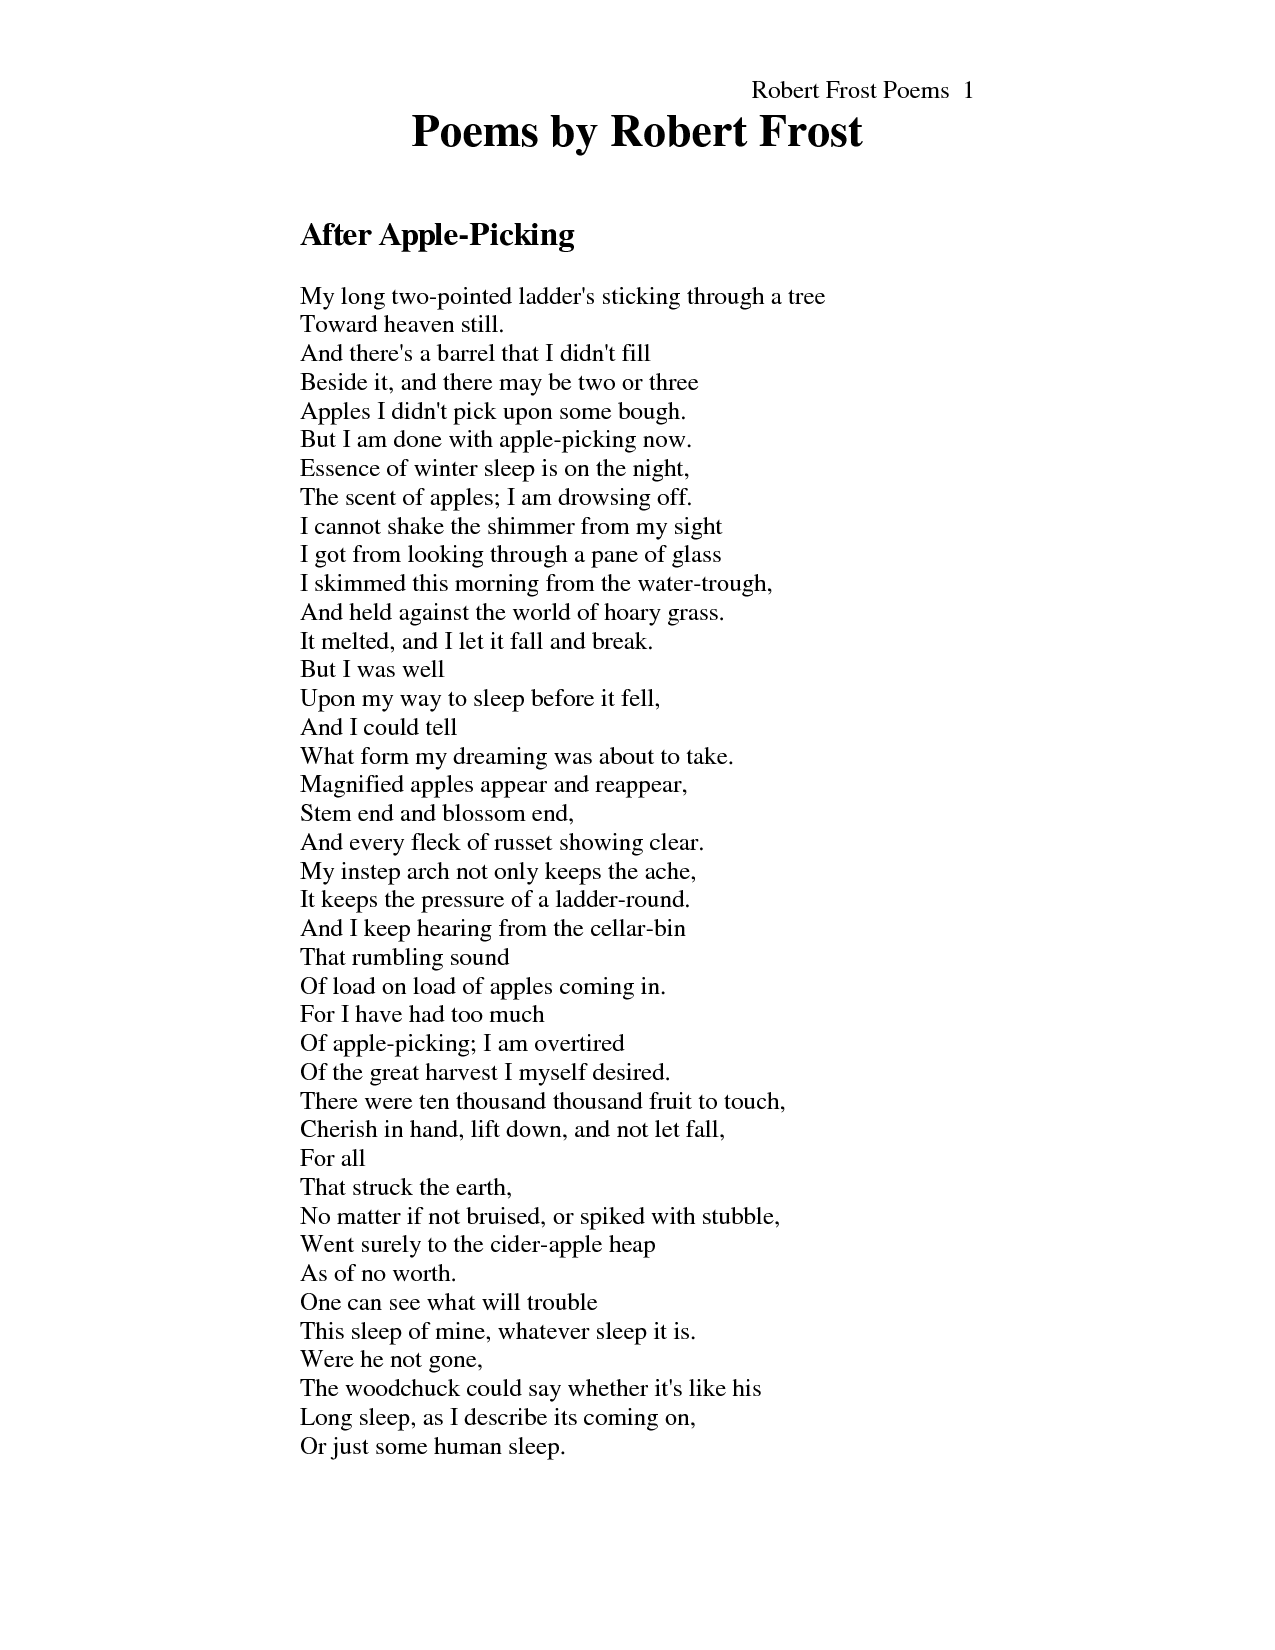 robert frost s after apple picking poetry poem robert frost s after apple picking